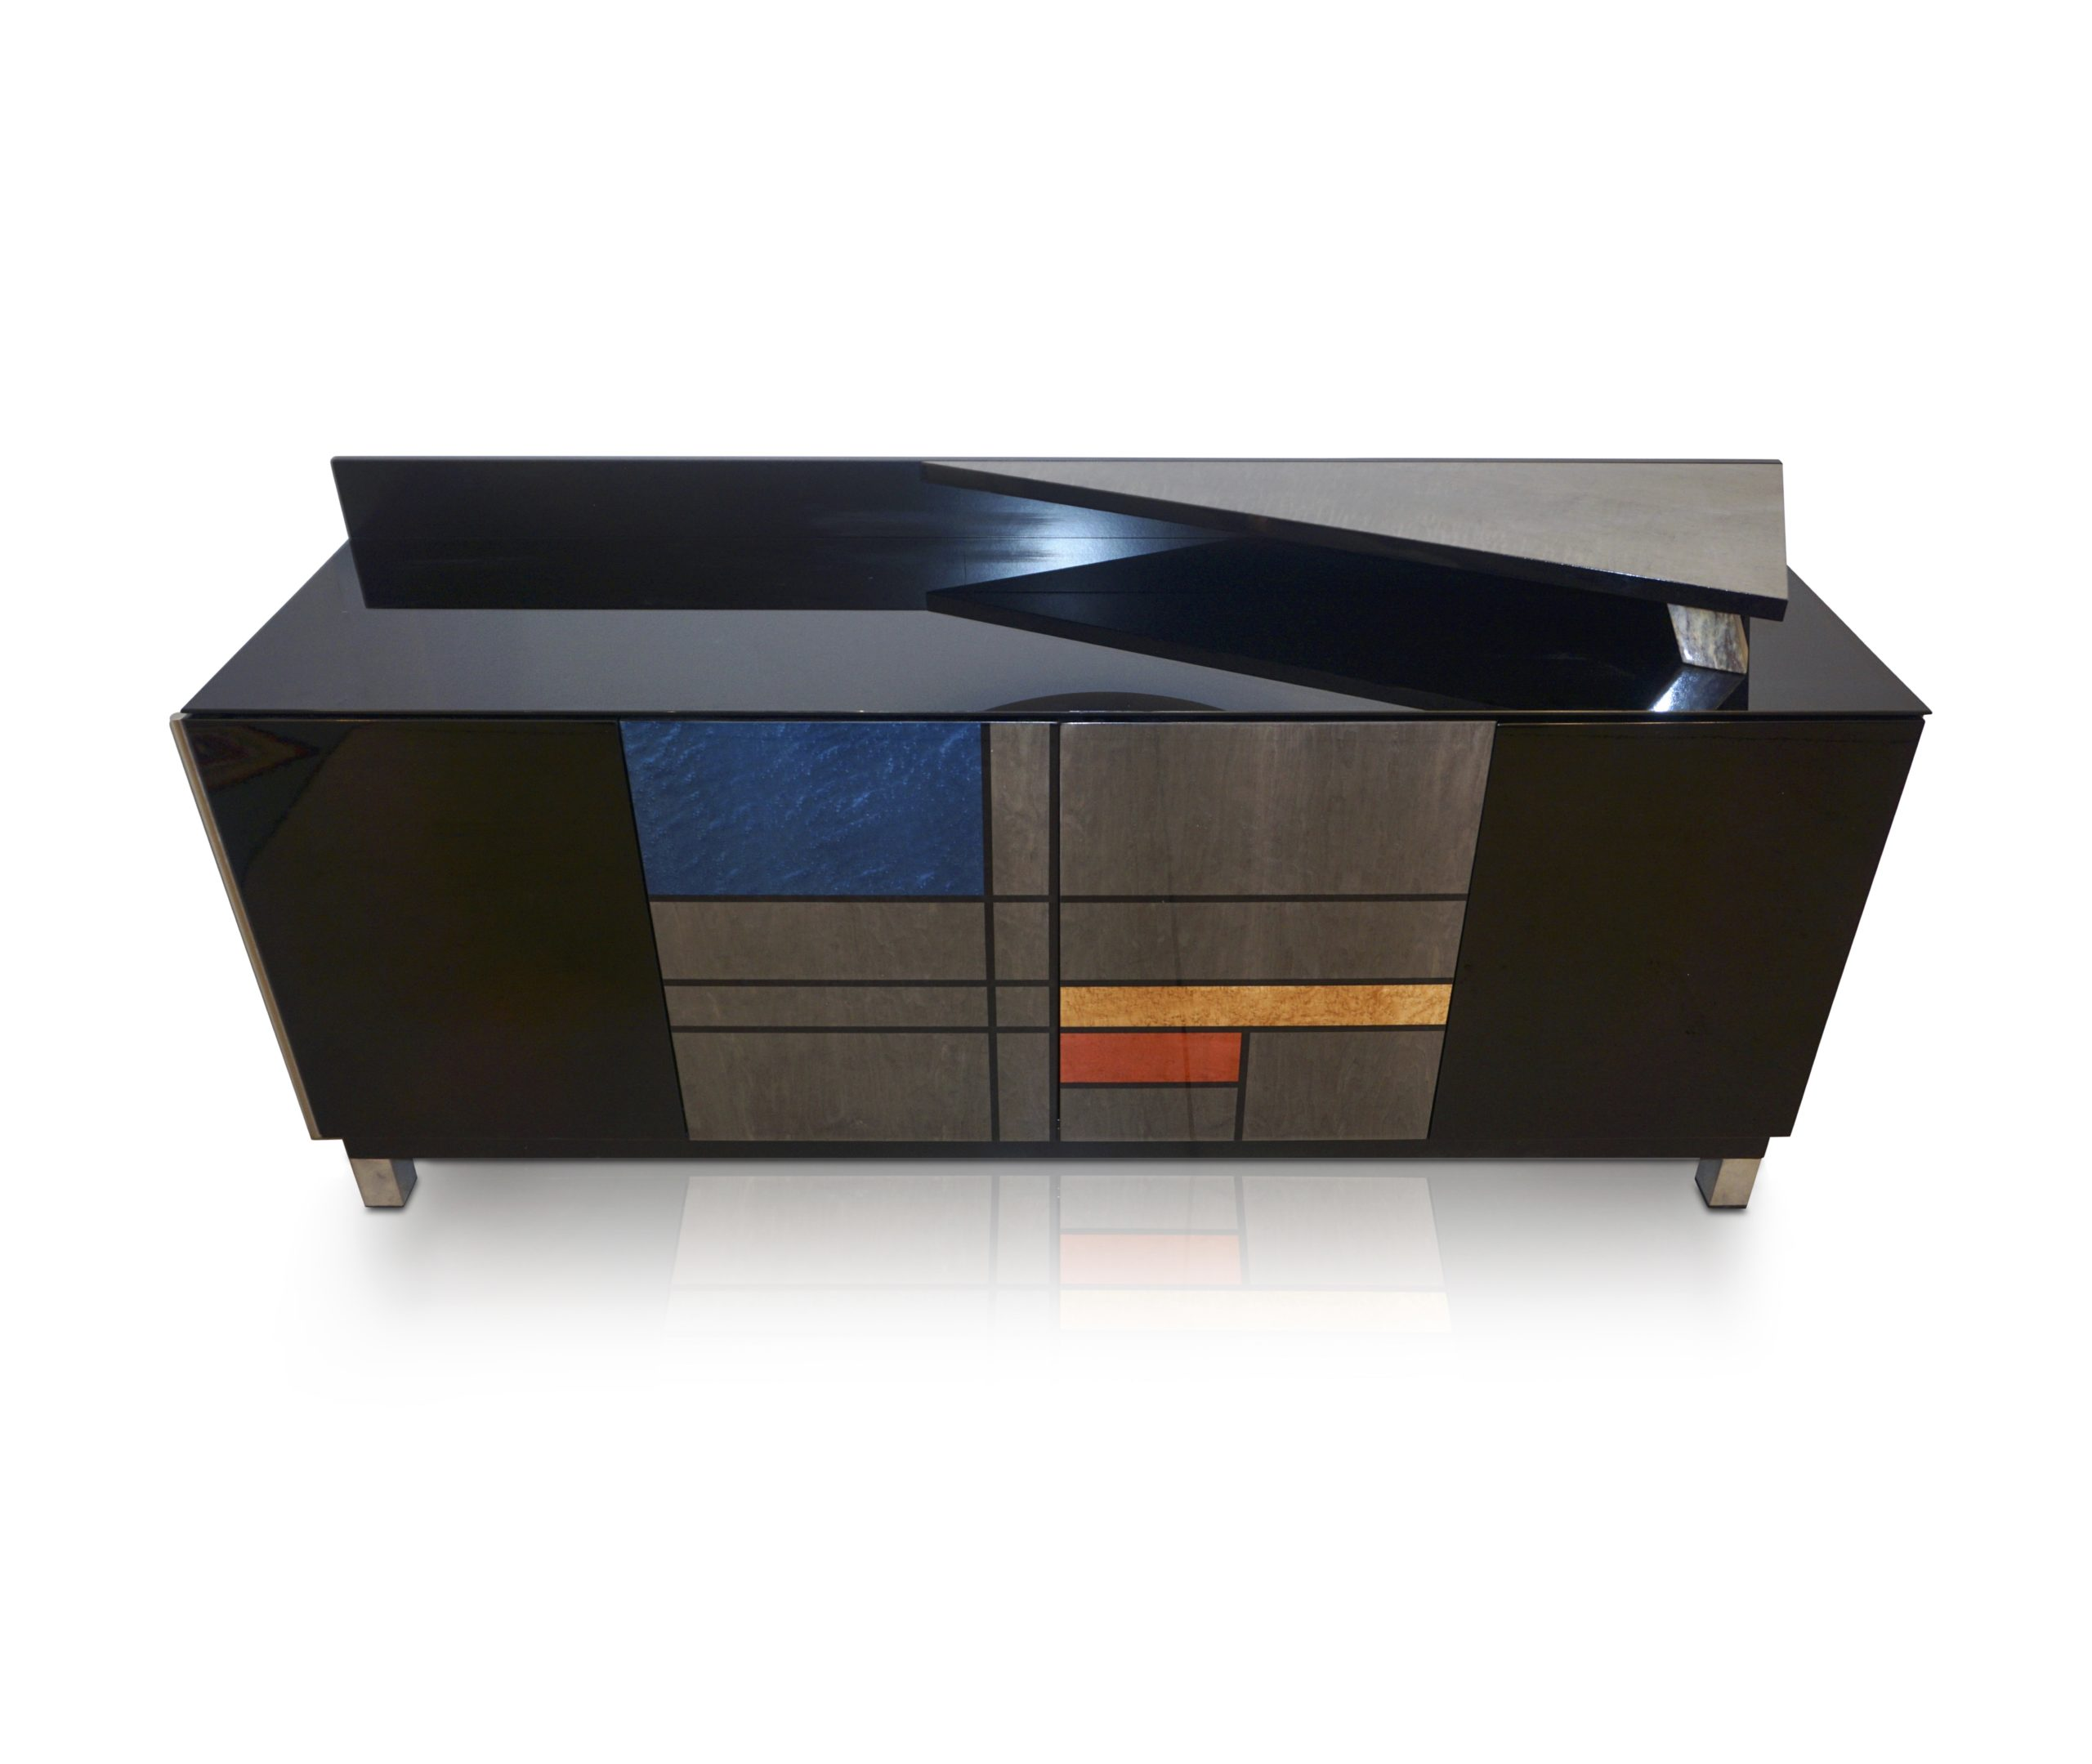 cosulich_interiors_and_antiques_products_new_york_design_1976_Italian_Black_Lacquer_Silver_Grey_Blue_Mondrian_Decor_Bar_Sideboard_image-scaled-1